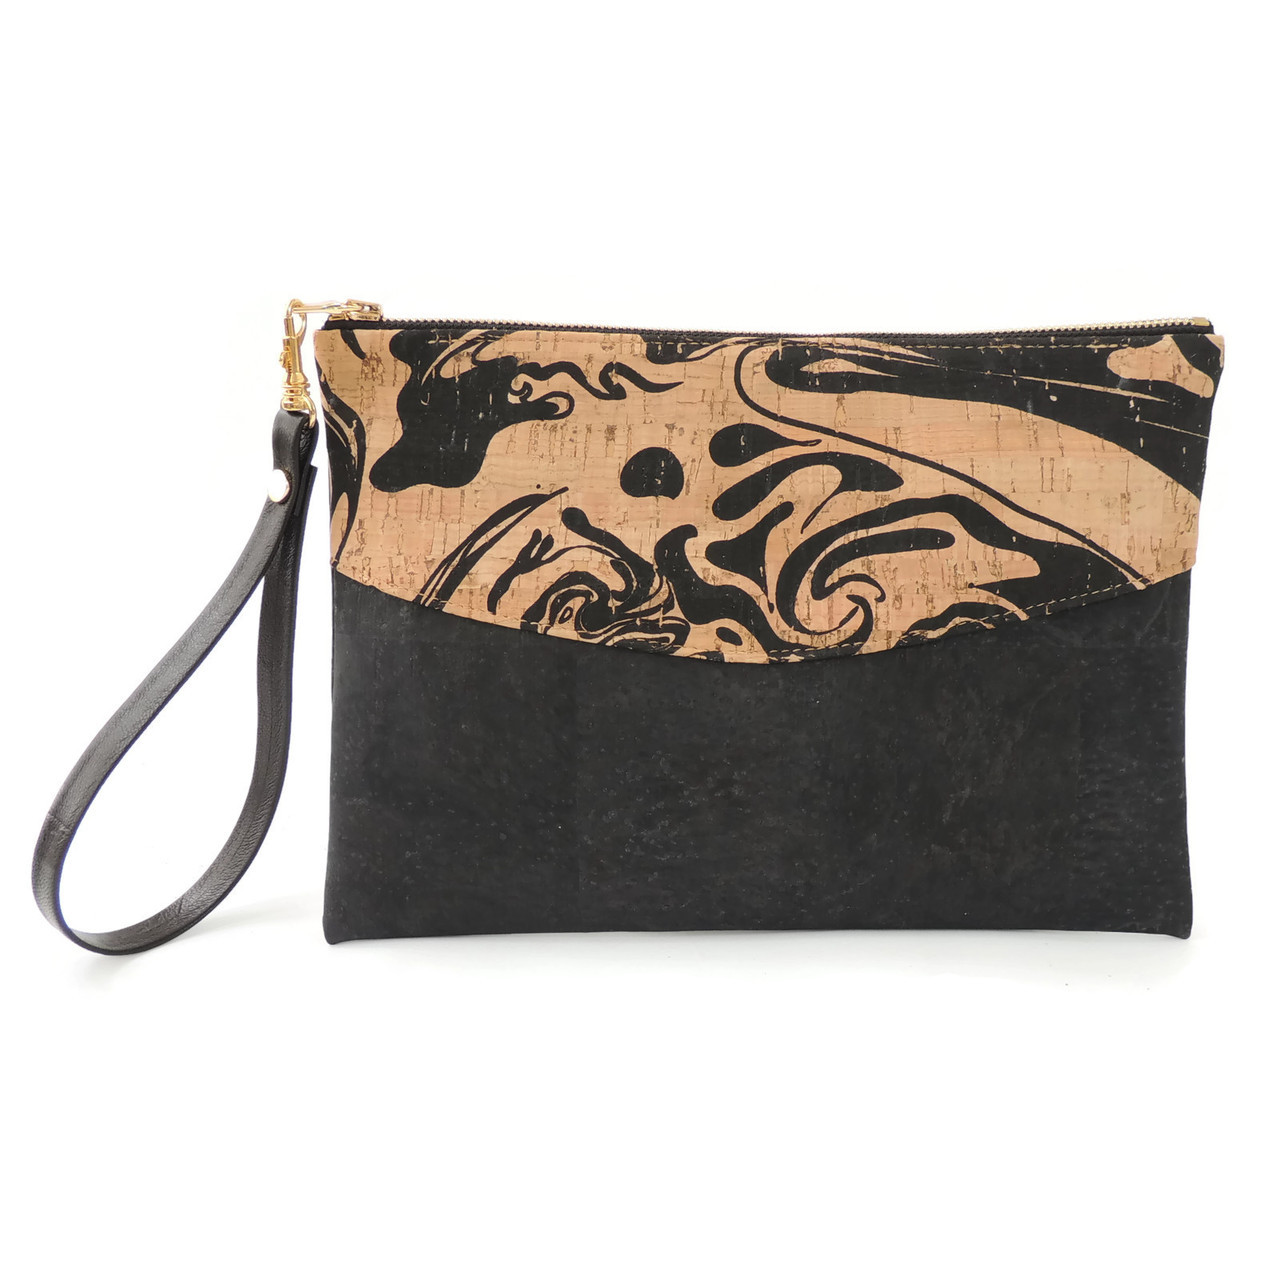 Smile Clutch in Black Ink Cork